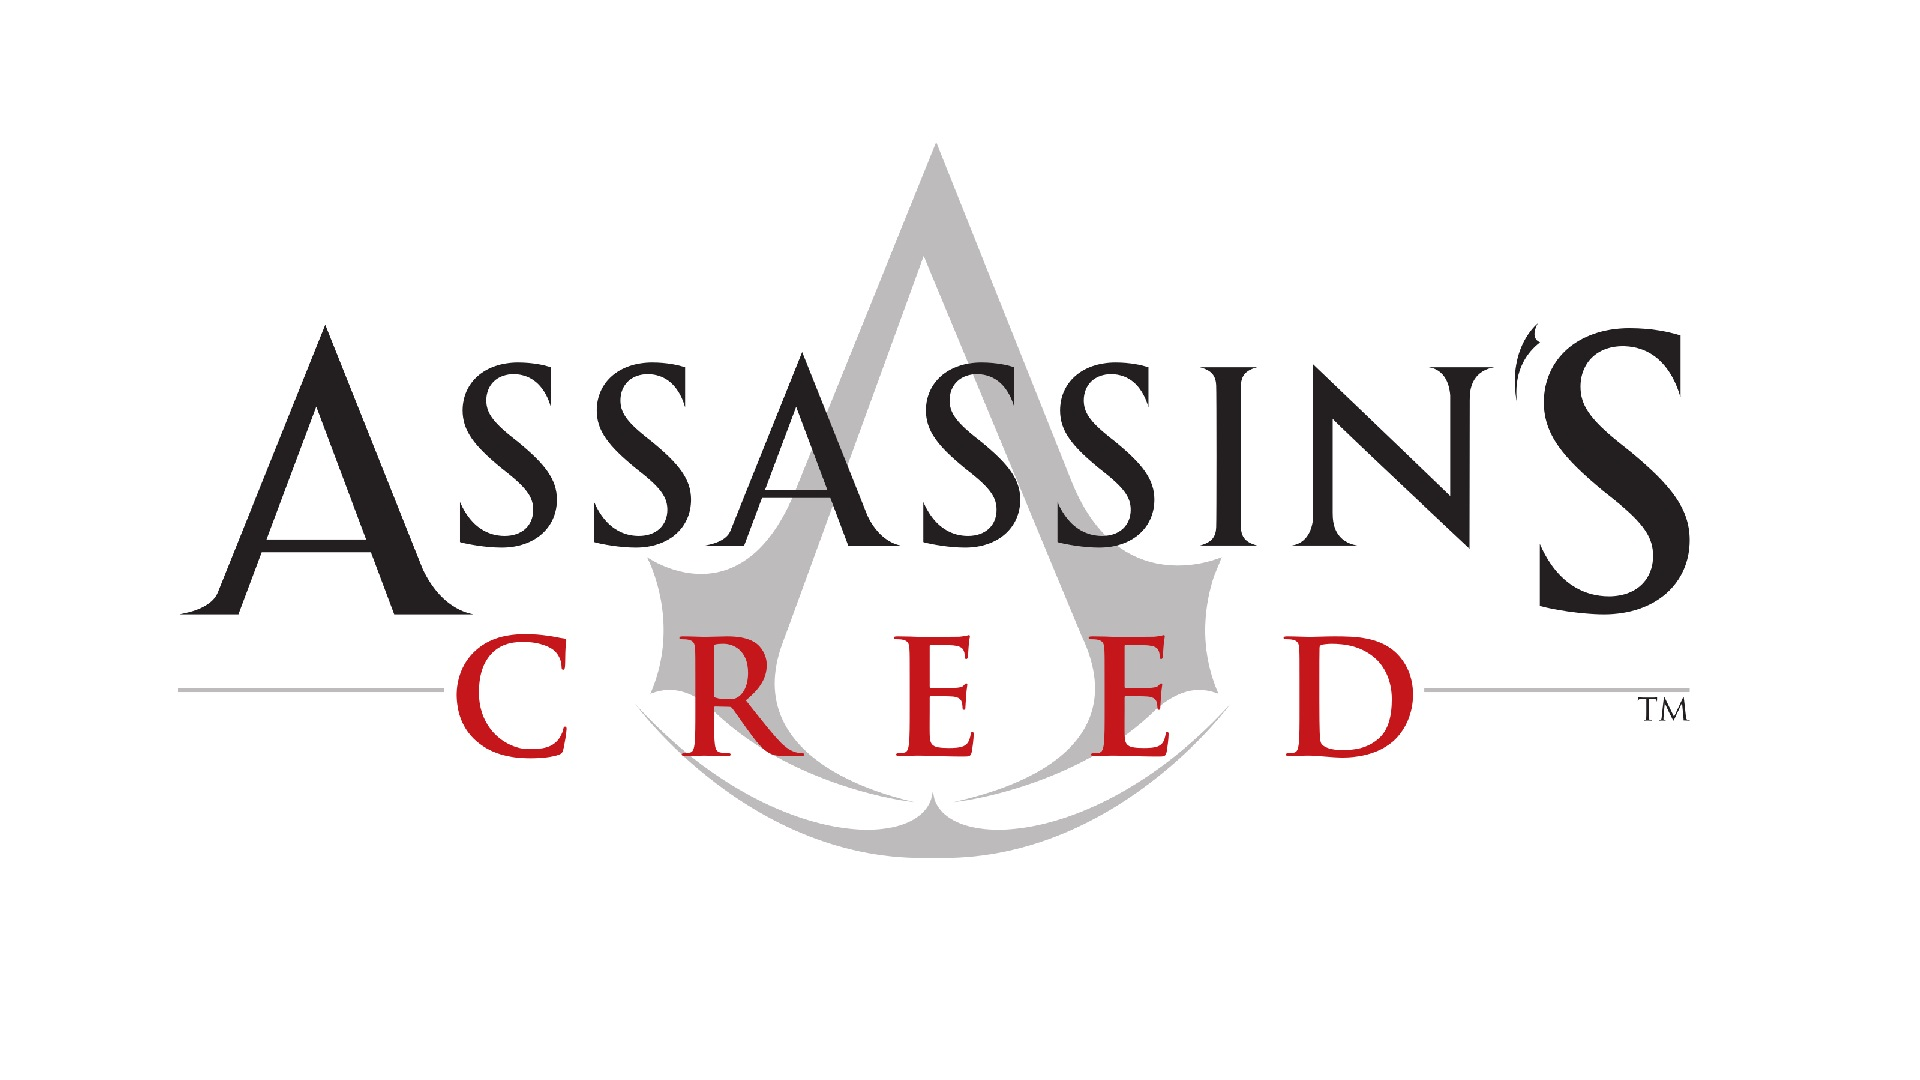 Assassin's Creed Infinity: New project should continue to offer great stories